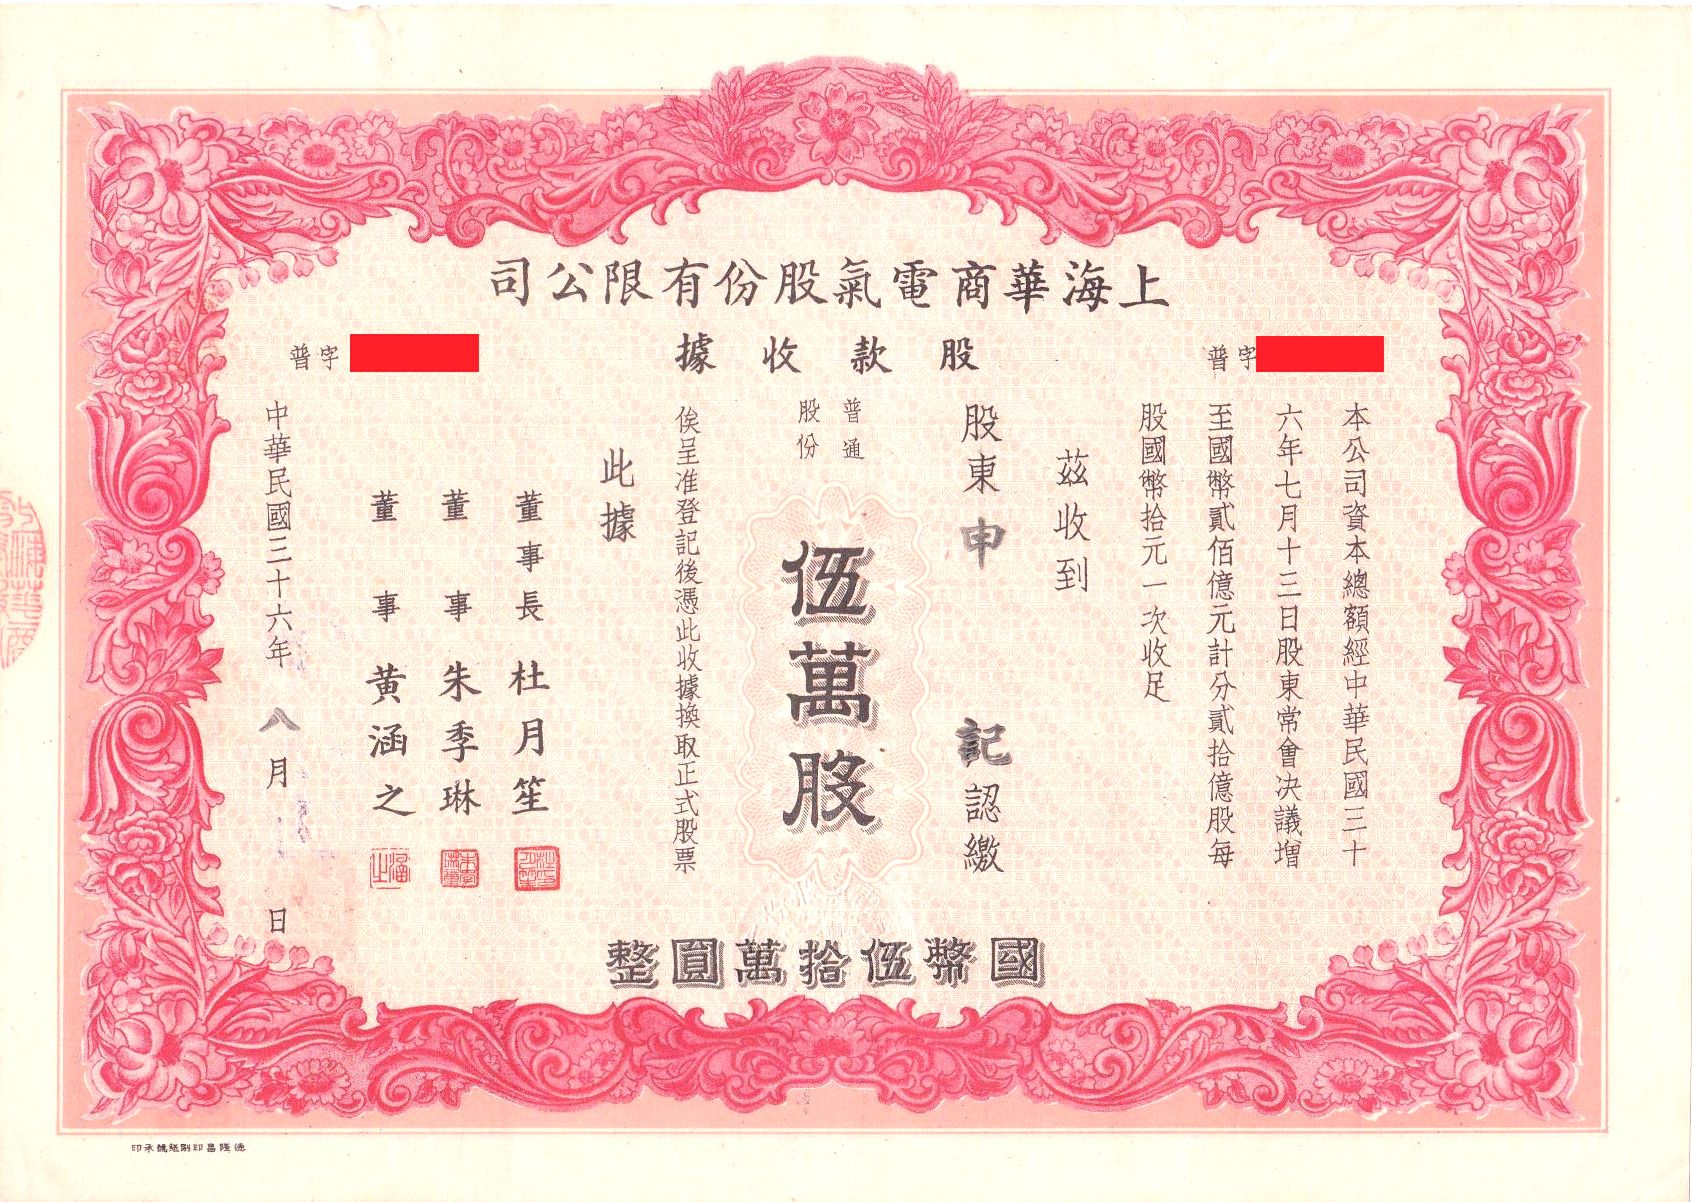 S1064, China Shanghai Electrics Co., Stock Certificate 50,000 Shares 1947